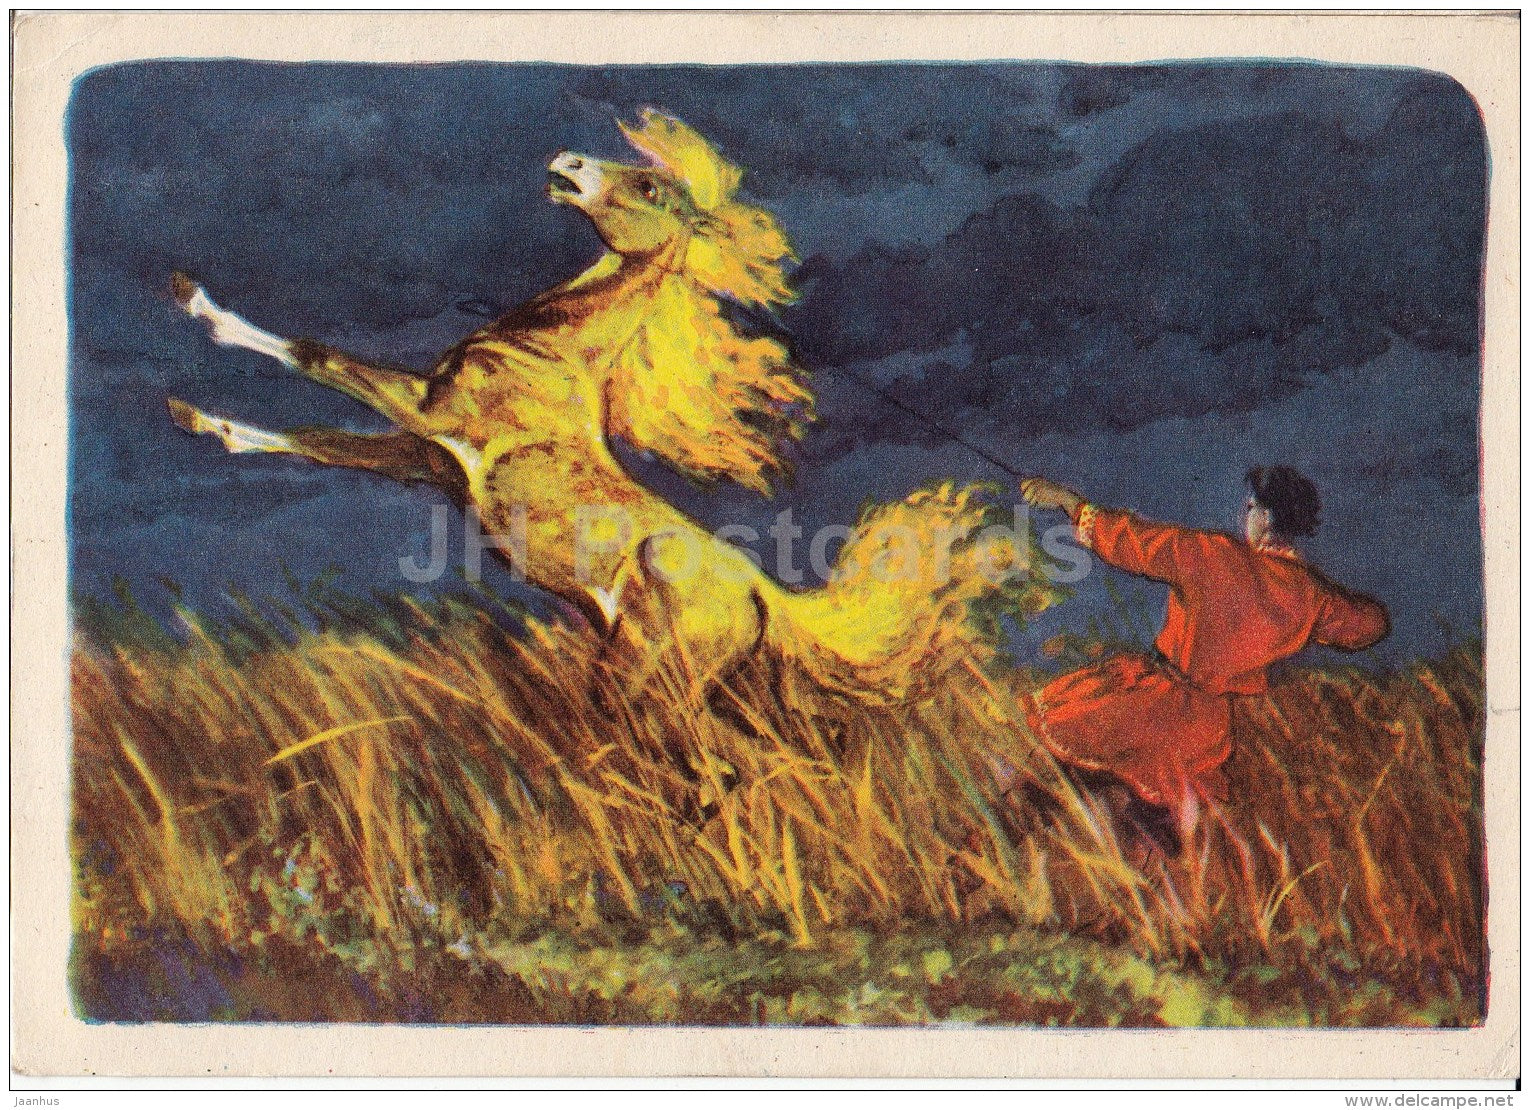 illustration by N. Kochergin - Sivka Burka - horse - 1957 - Russia USSR - unused - JH Postcards